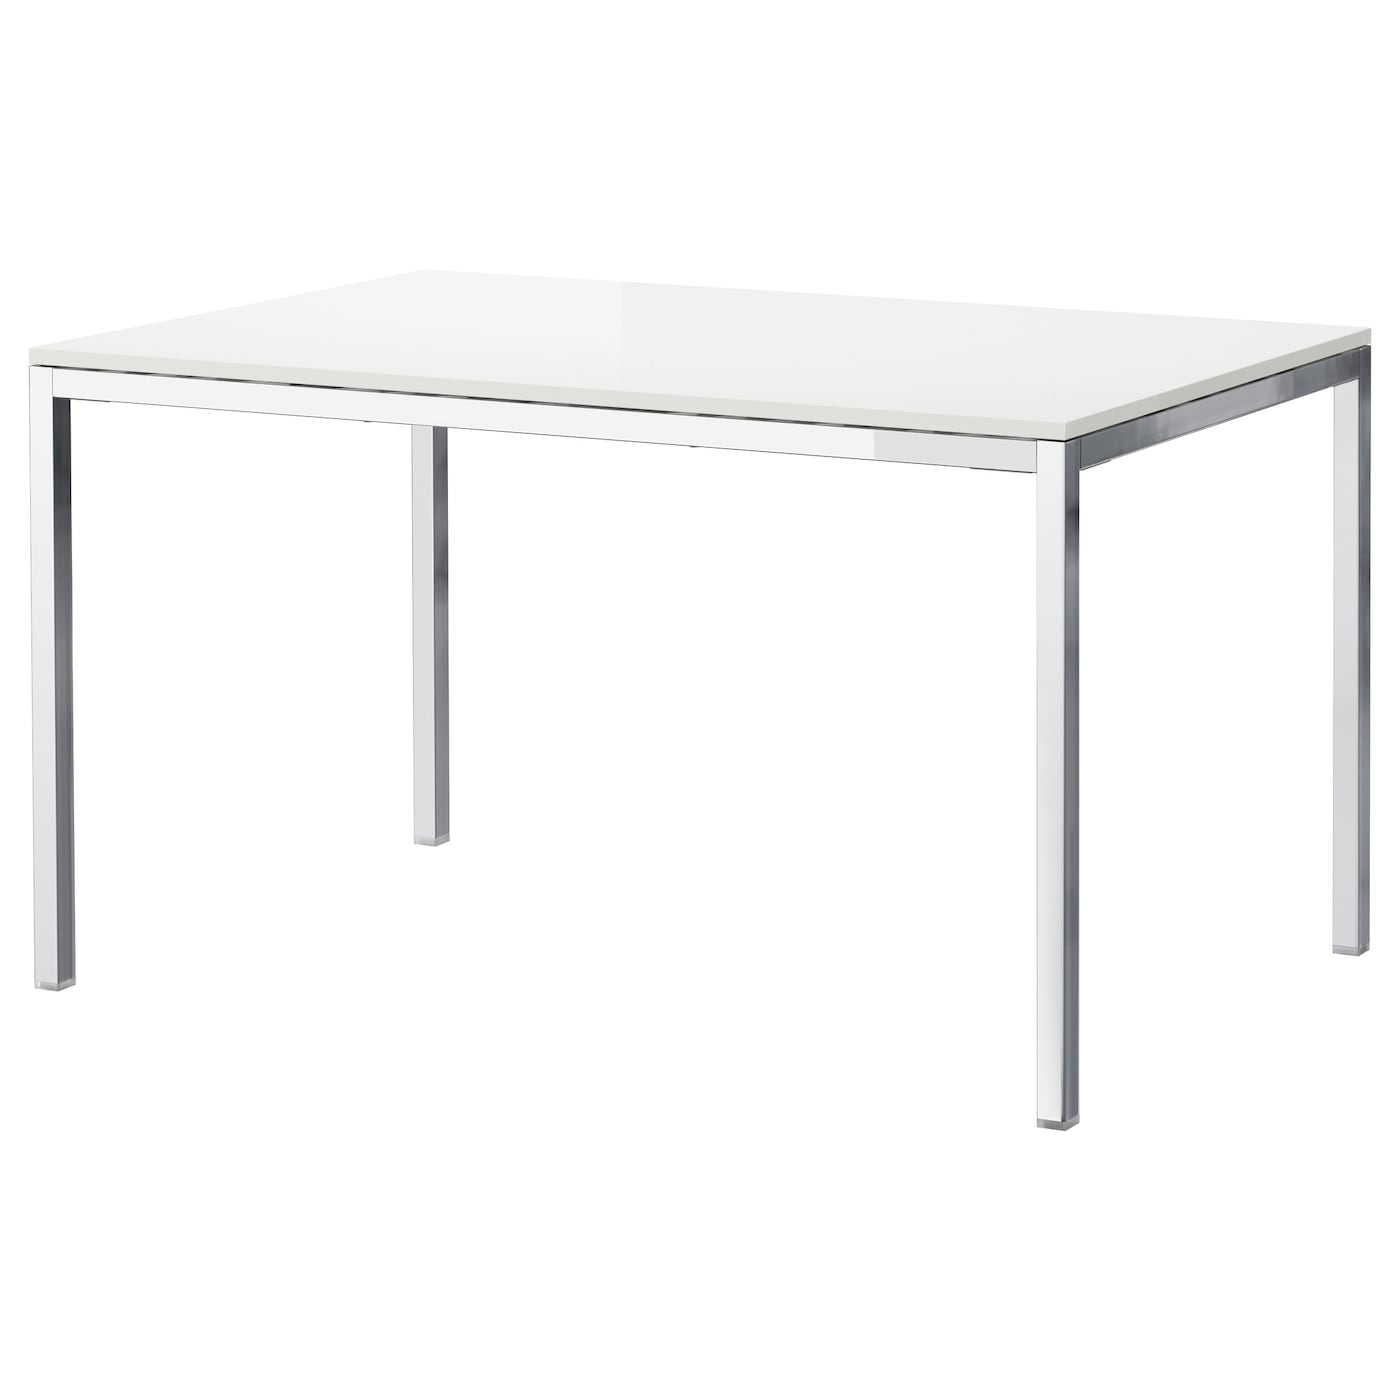 Torsby table chrome plated high gloss white 135x85 cm ikea for Base de table ikea